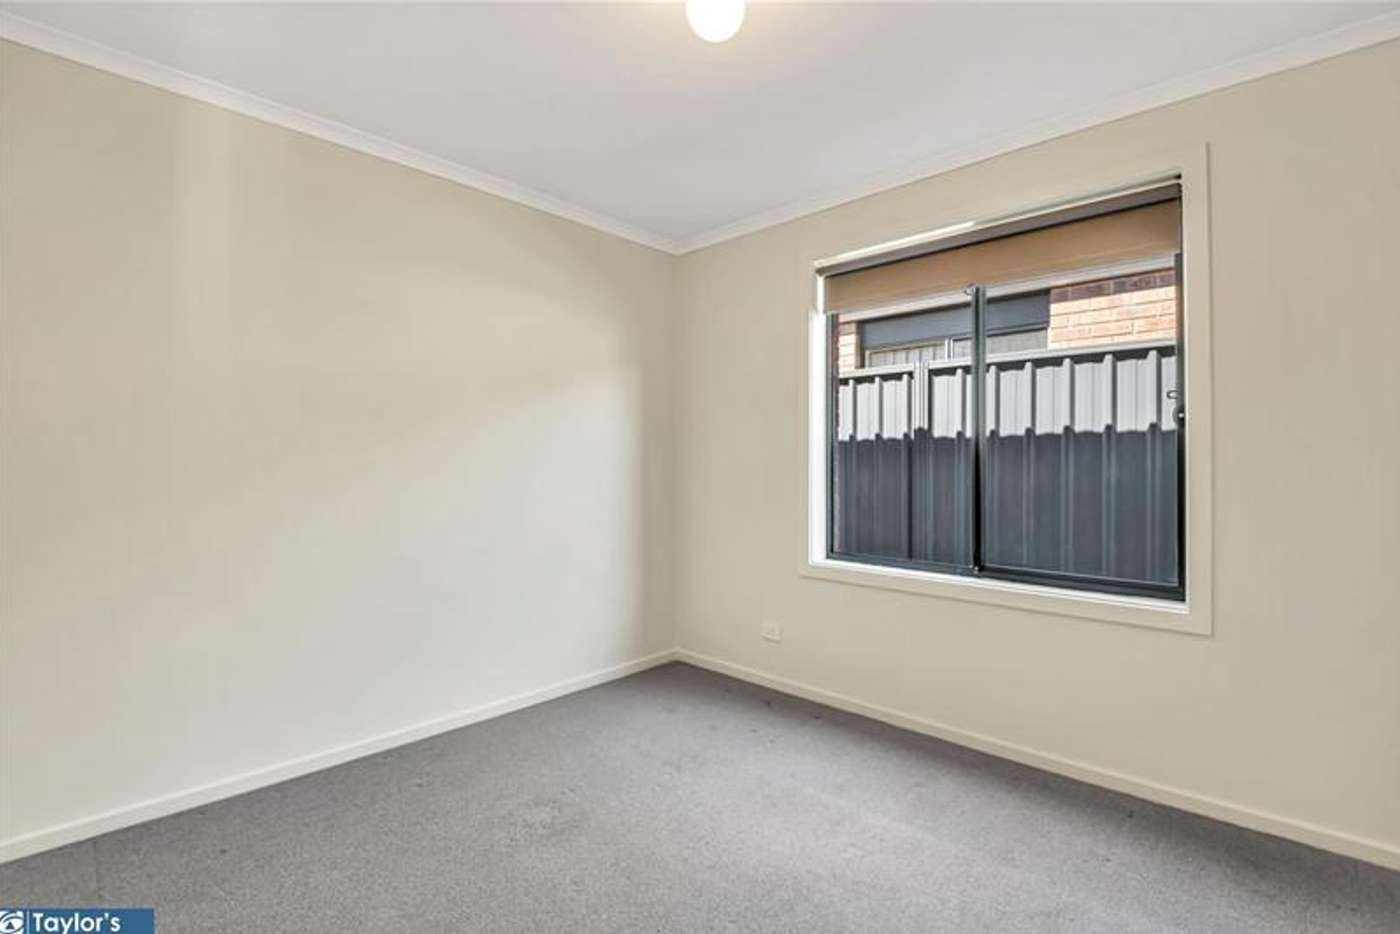 Fifth view of Homely house listing, 22B Harcourt Terrace, Salisbury North SA 5108